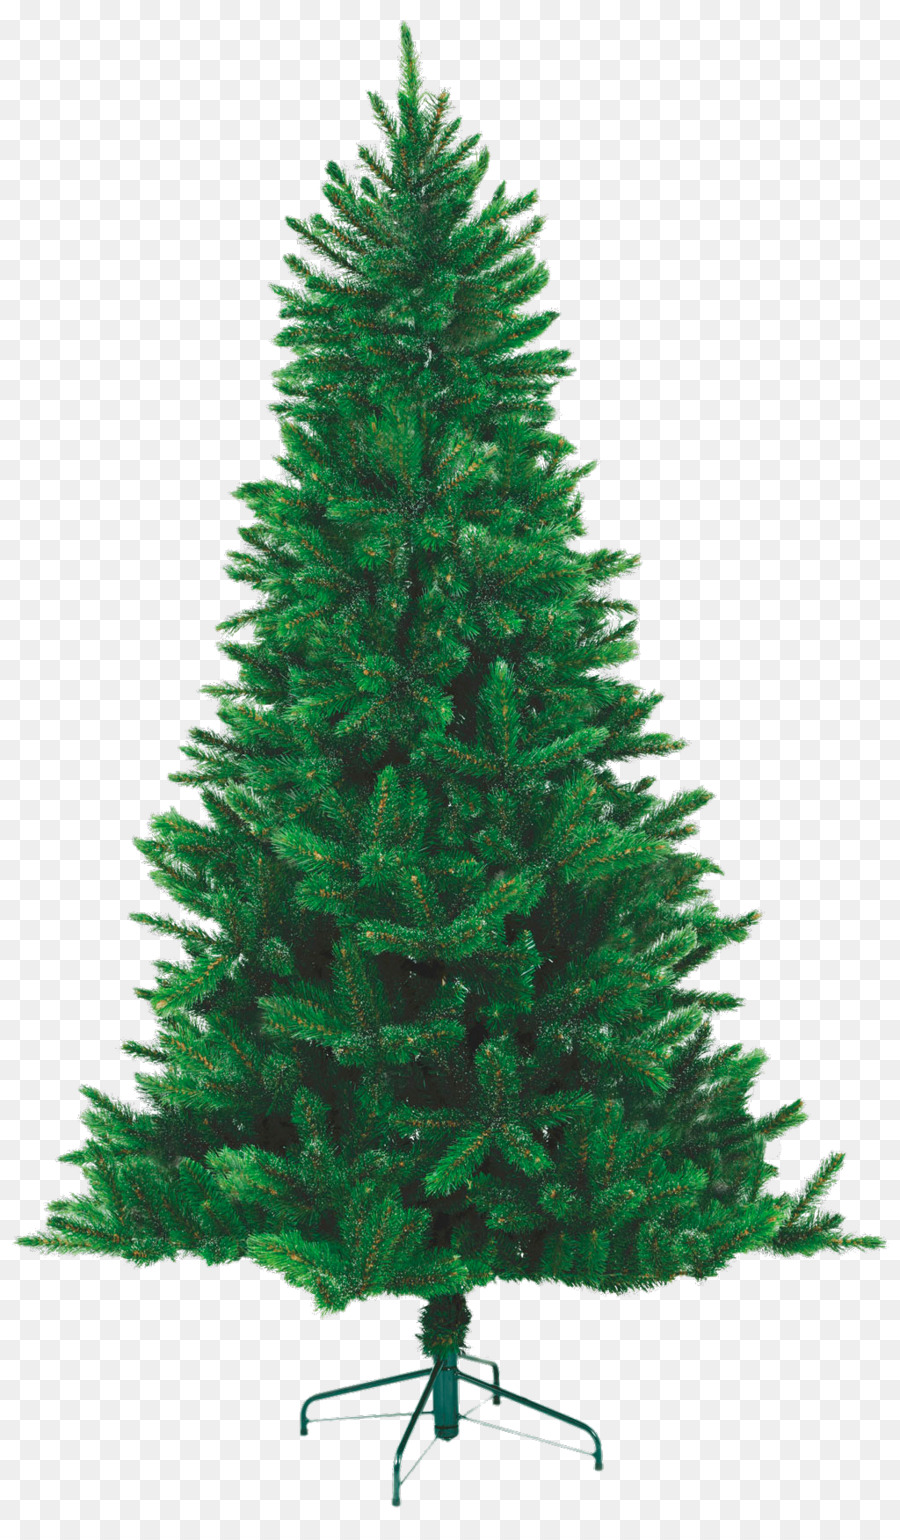 needle Norway spruce New Year tree Green Pine - fir-tree png ...